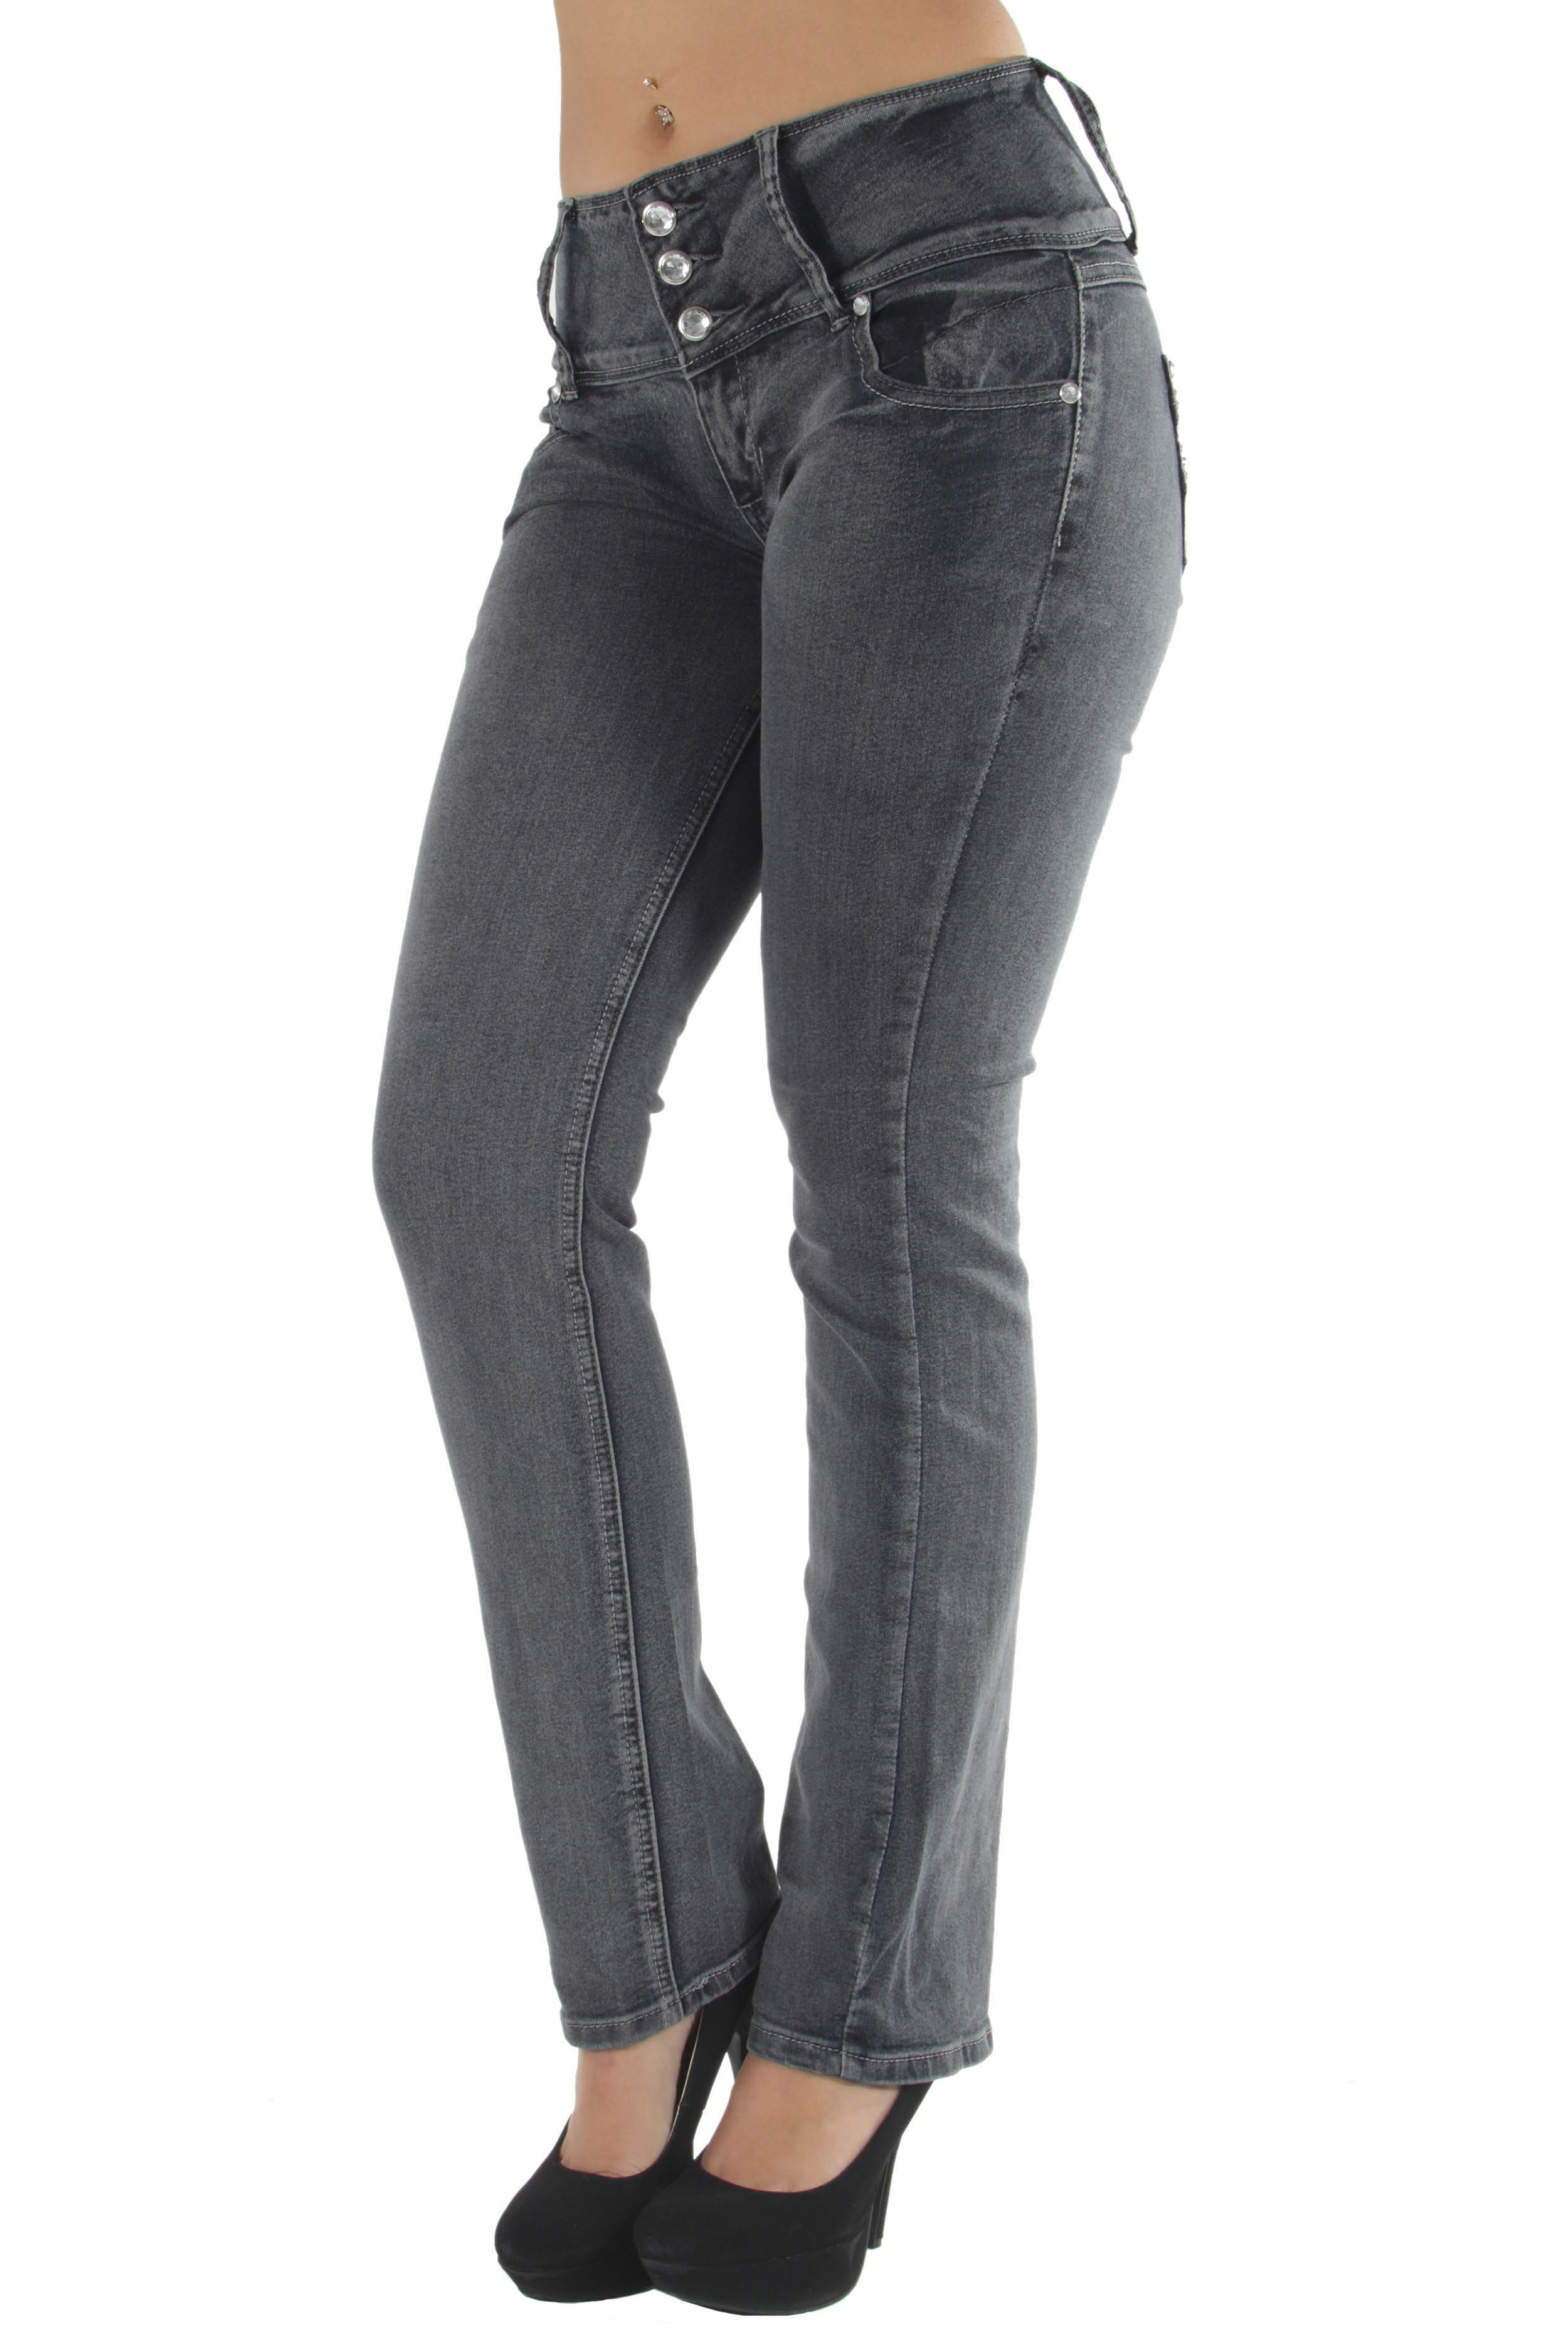 Style C582P - Plus Size High Waist Butt Lifting Stretch Boot Leg Jeans